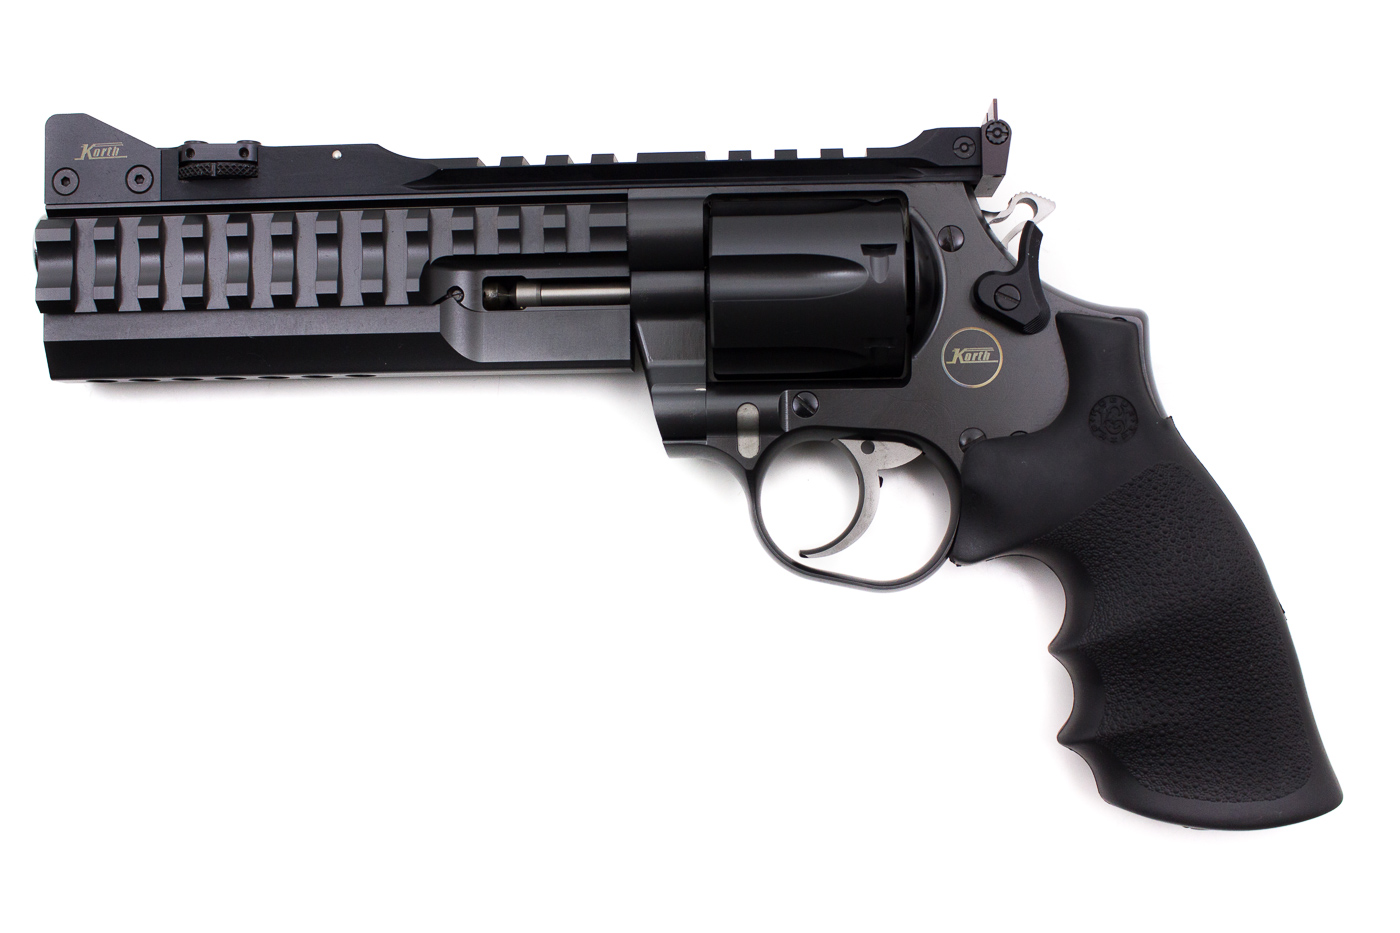 Korth National Standard Supersport STX .357 Magnum inkl. Wechseltrommel - Image 1